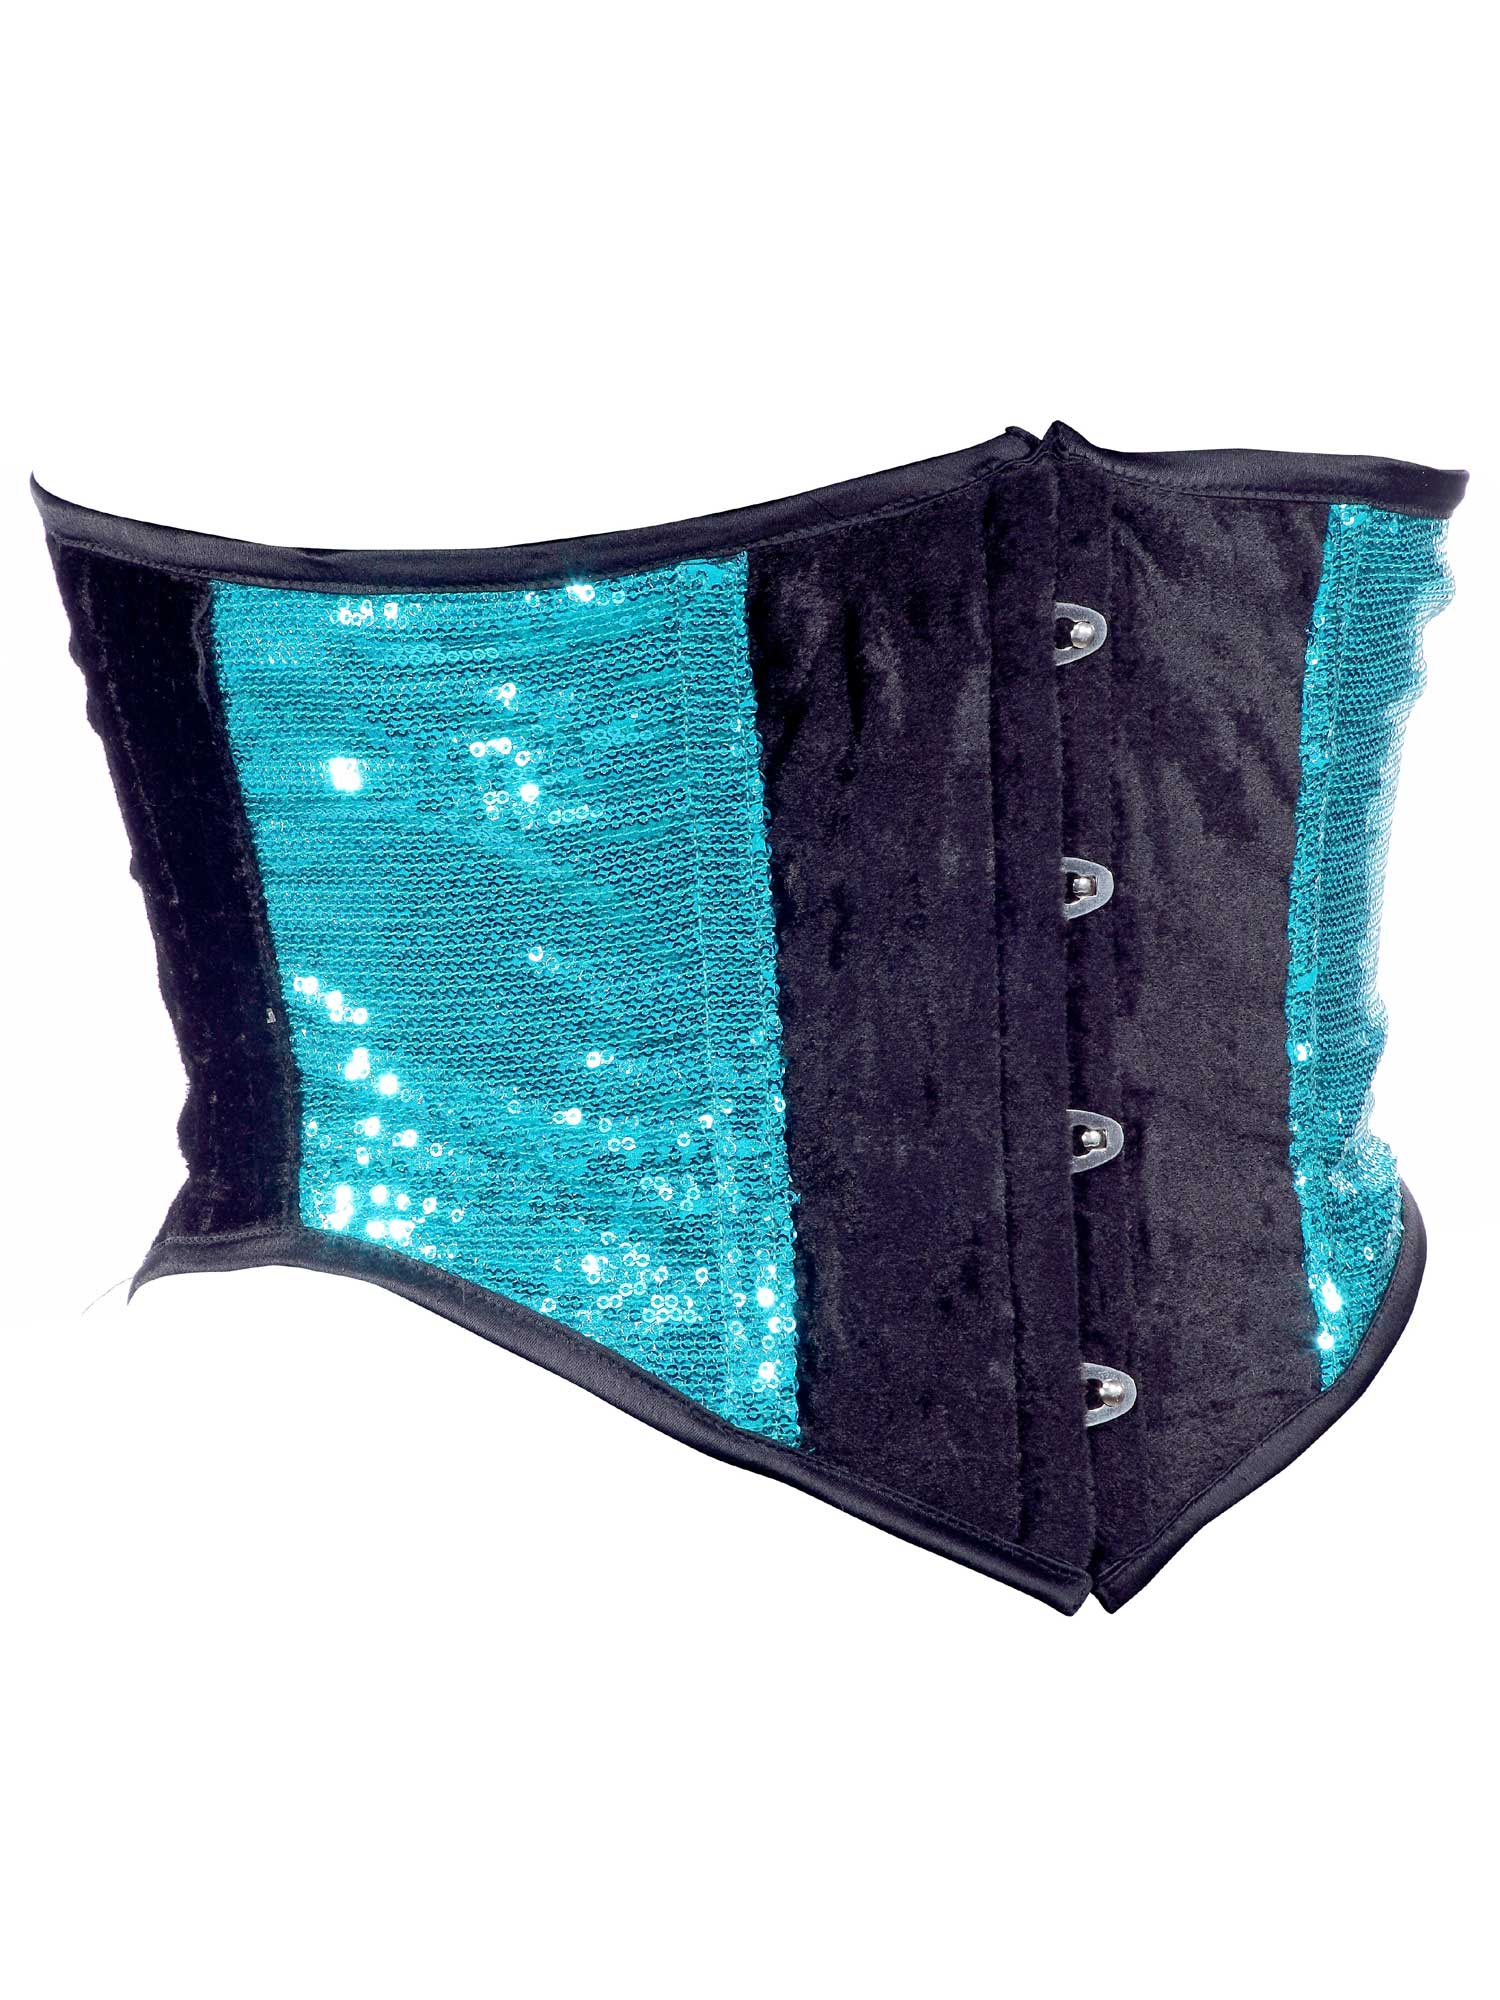 blue_and_black_sequin_fabric_steel_boning_underbust_corset_waist_cincher_bustier_bustiers_and_corsets_4.jpg